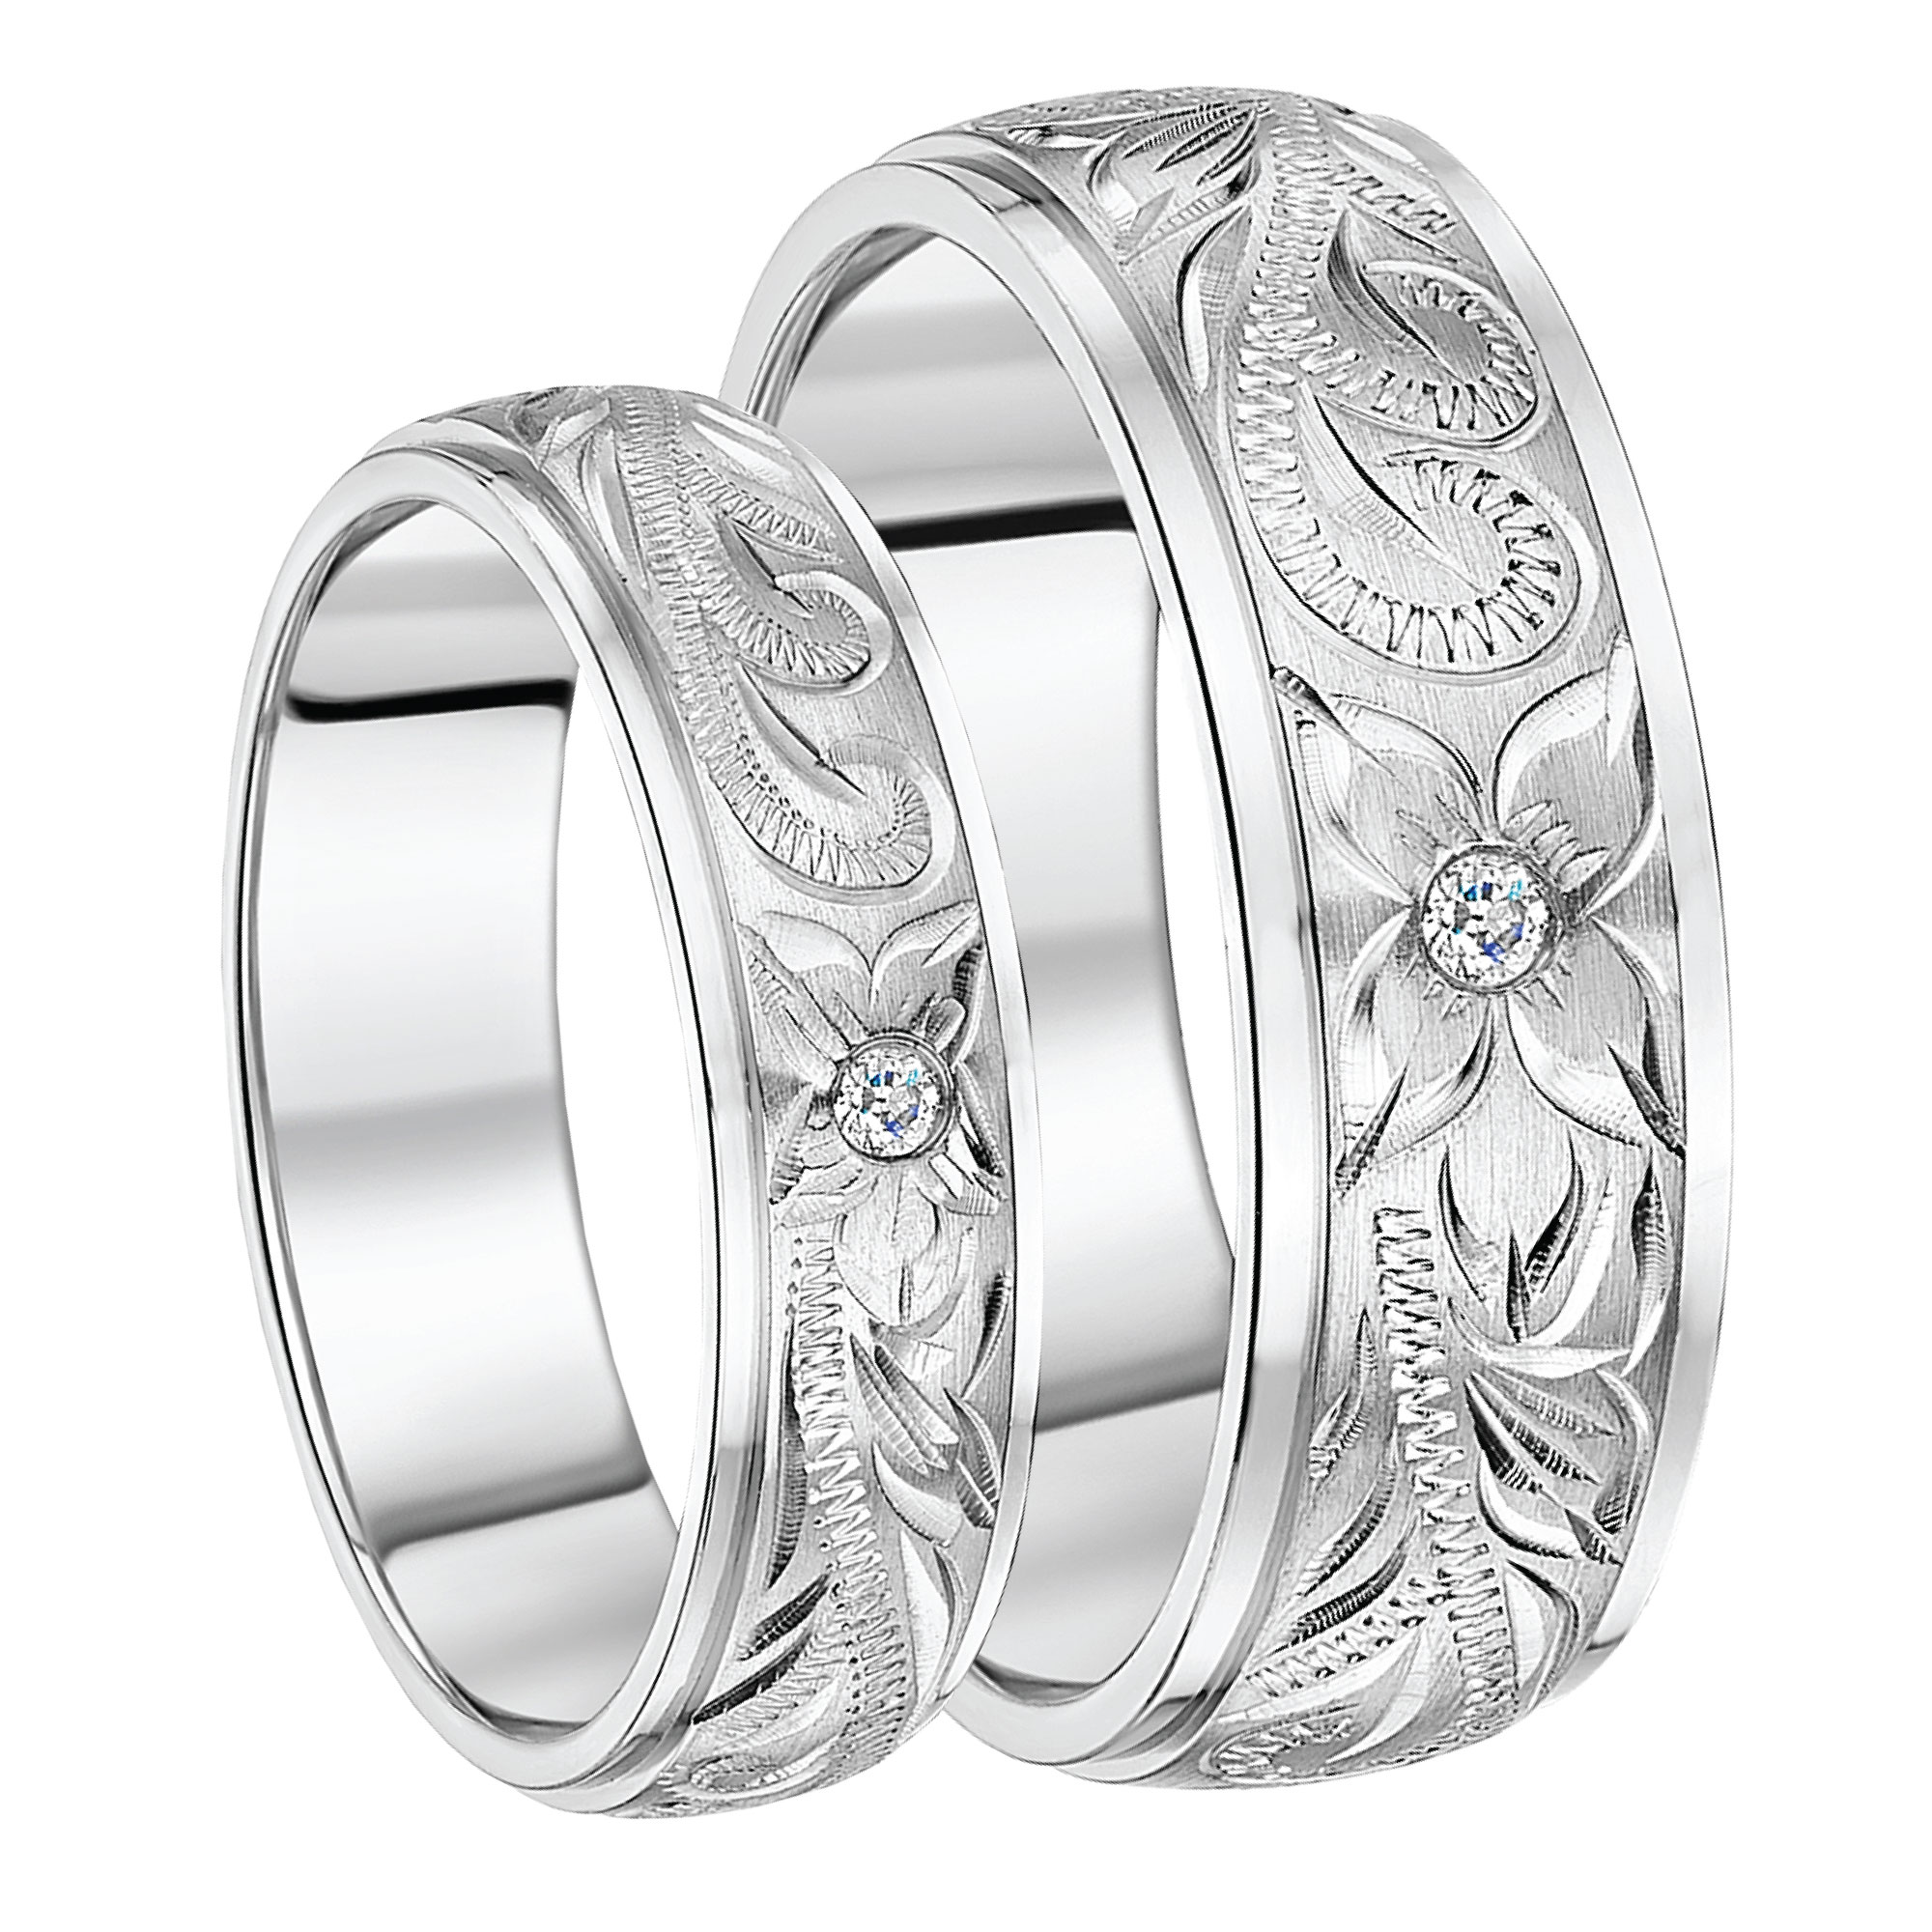 of love with bands poem jl platinum made custom rings products engraved pt elvish